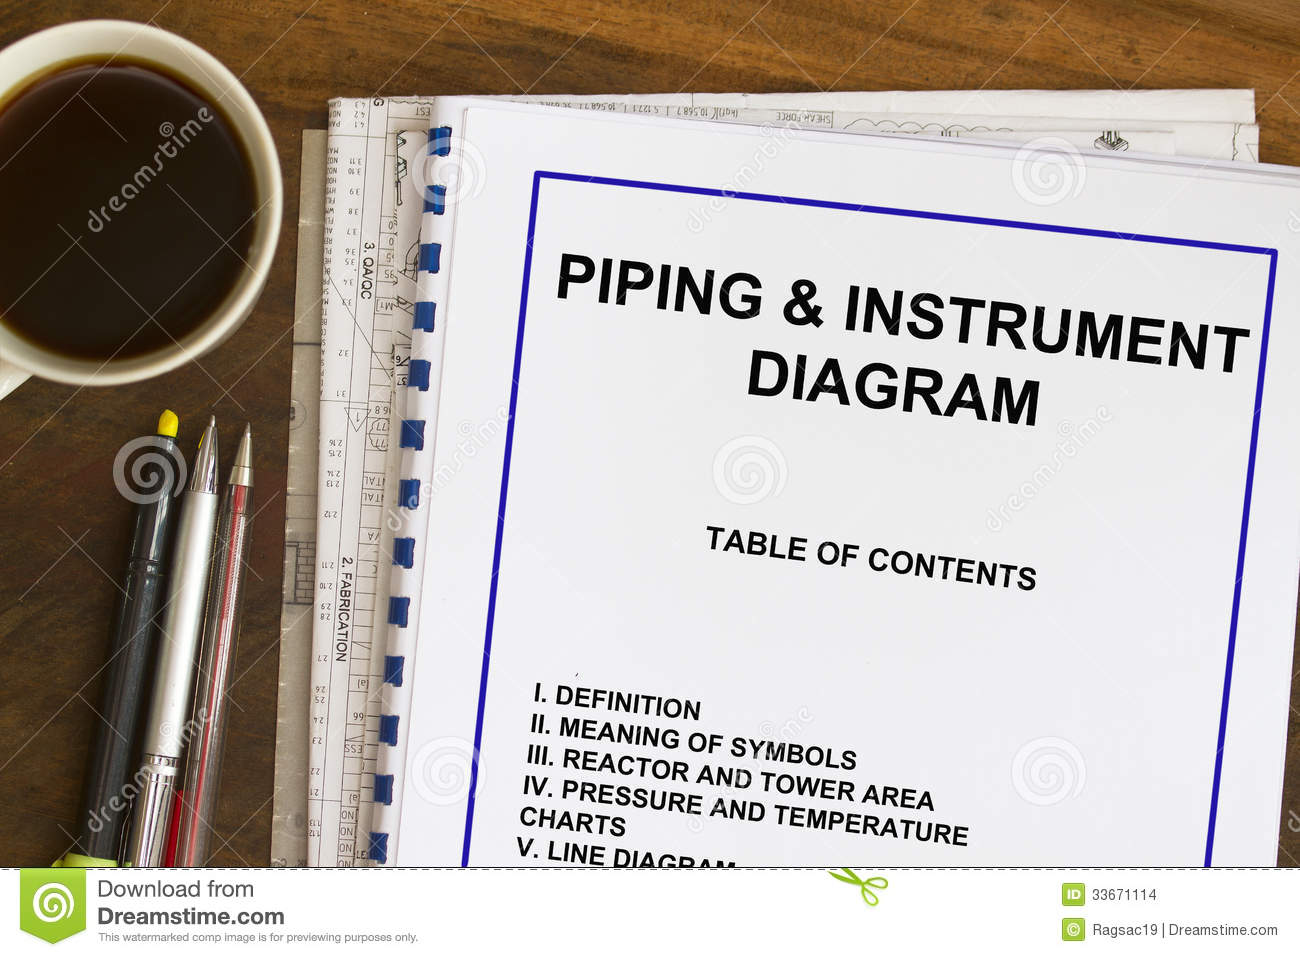 Pipinginstrument And Diagram Stock Photo Image Of Instrument Piping Line